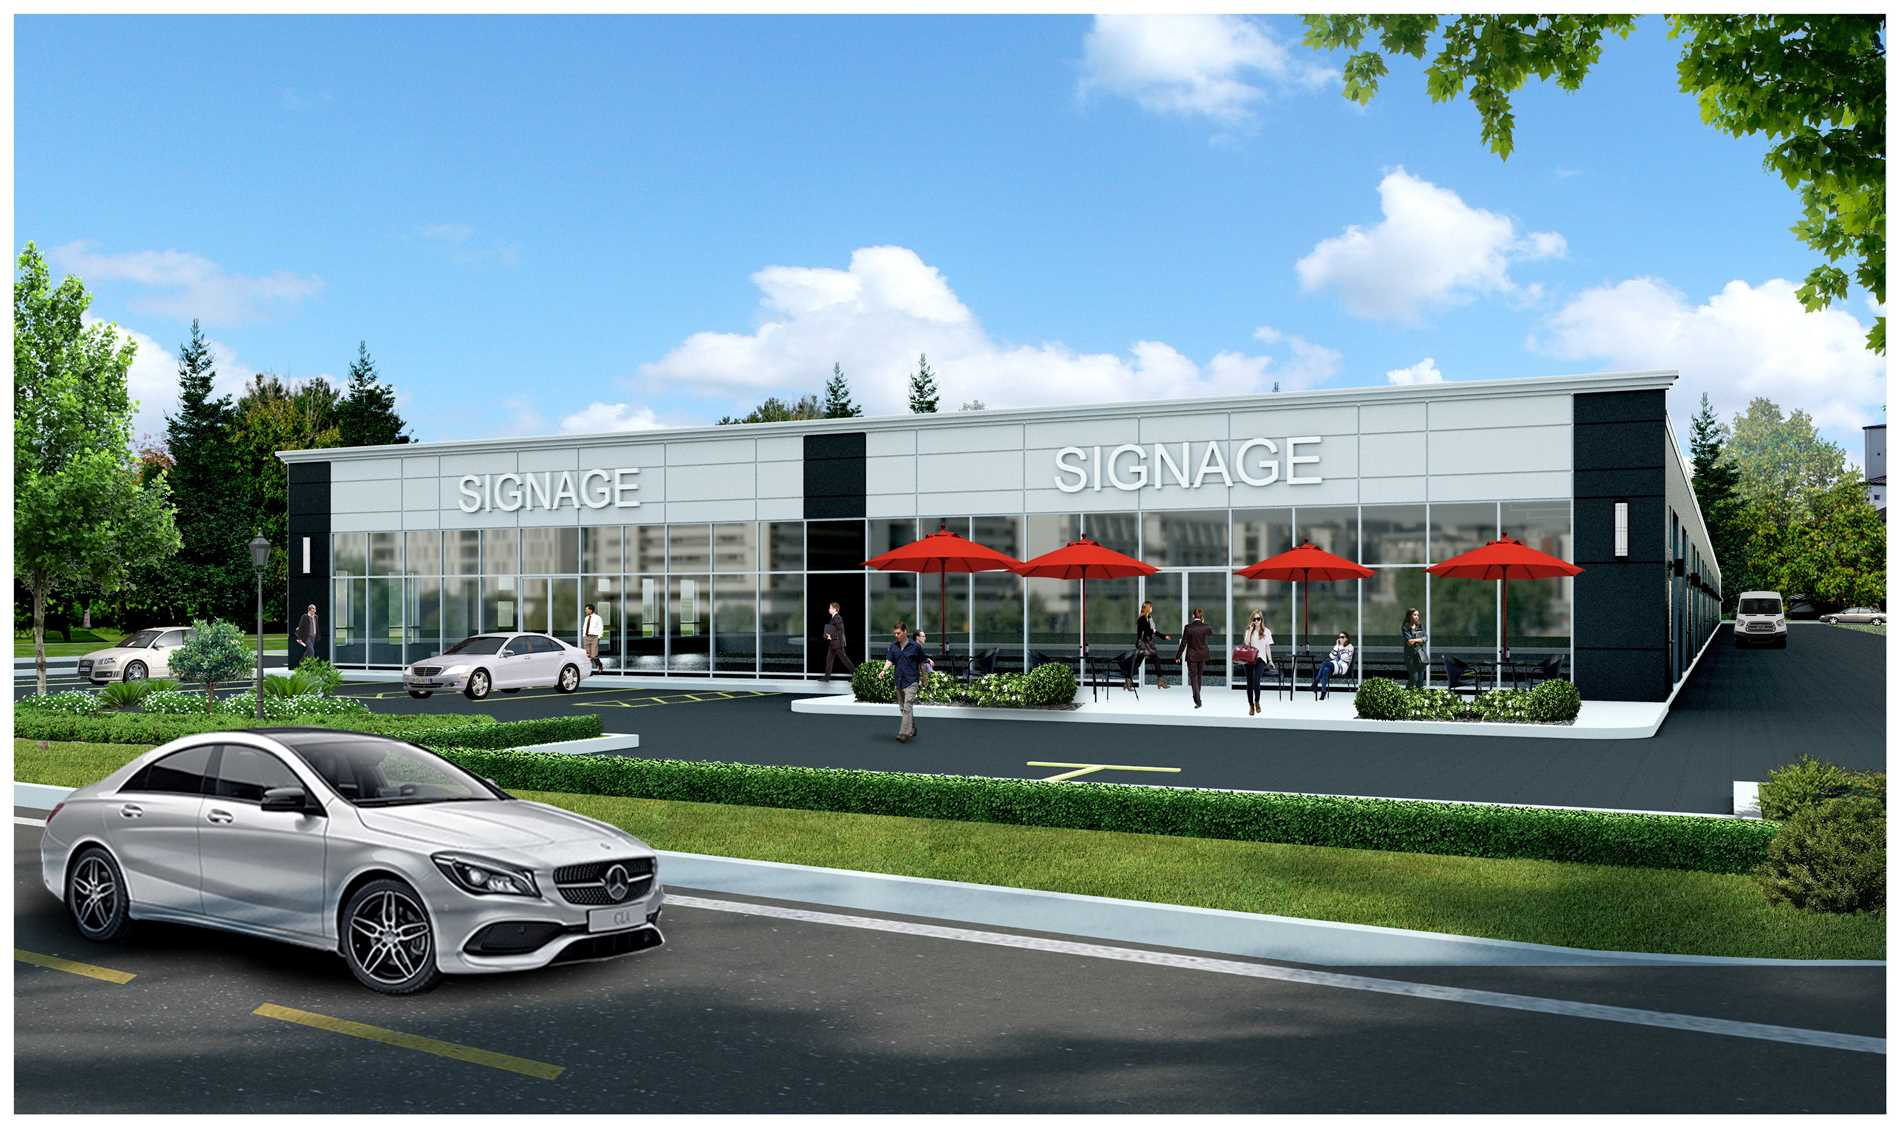 Amazing Opportunity To Invest In Brampton East Industrial Area. Desirable M2 Zoning Ideal For Automotive(Car/Truck) Repair/Body Shop, Manufacturing, Cleaning, Packaging, Processing, Printing Establishment, Warehouse, Restaurant With Endless Uses And Possibilities. Great For New Startups Or Growing Businesses. Minutes Away From Highway 410 And 407. Great Exposure On Busy Road.